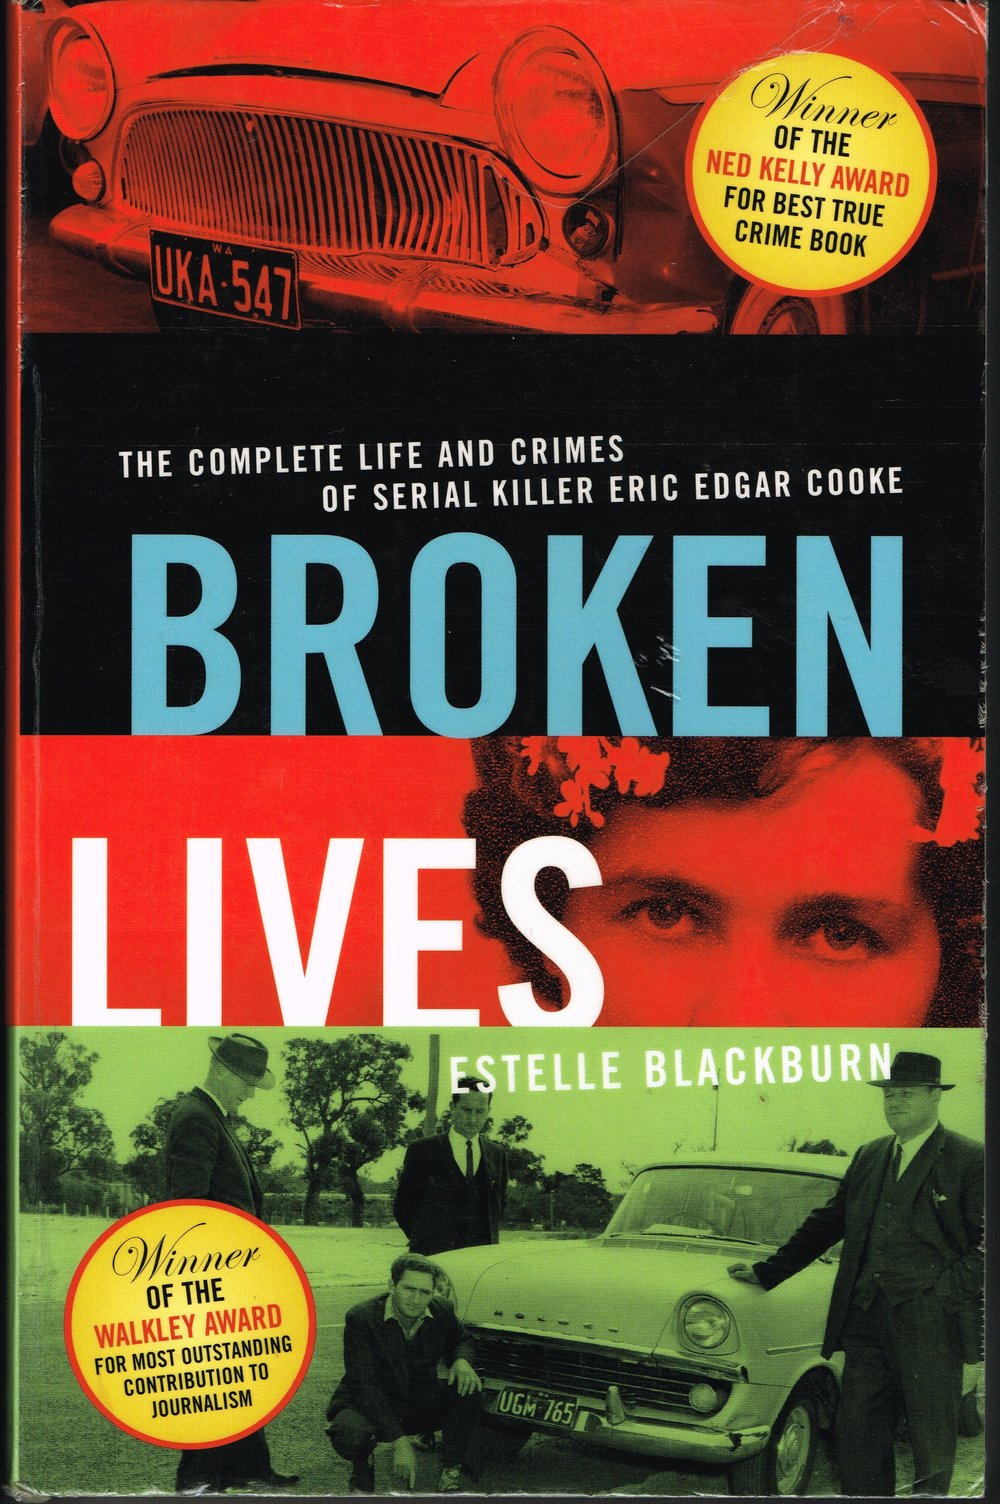 Broken Lives : The complete life and crimes of serial killer Eric Edgar Cooke  Estelle Blackburn